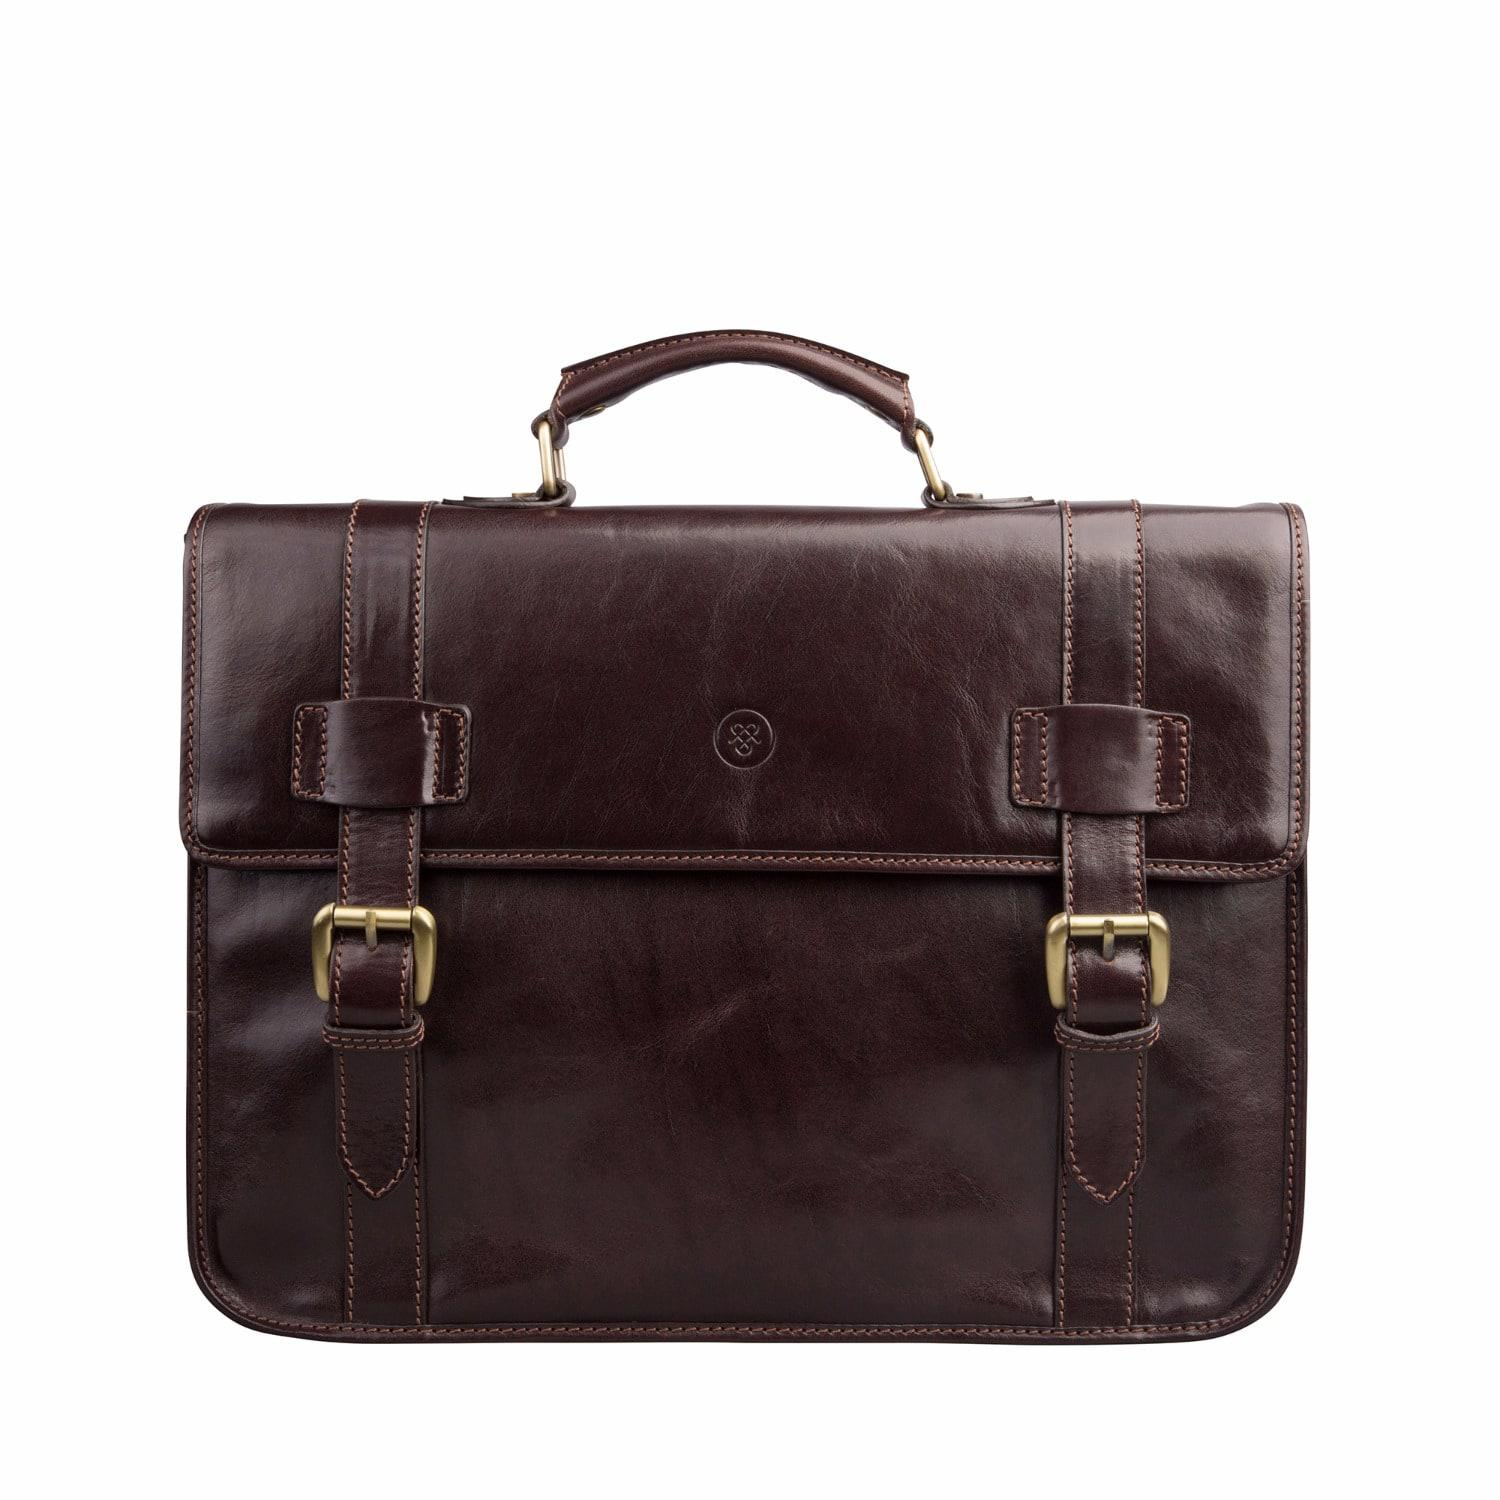 lyst maxwell scott bags the micheli mens leather backback briefcase chocolate brown in brown. Black Bedroom Furniture Sets. Home Design Ideas